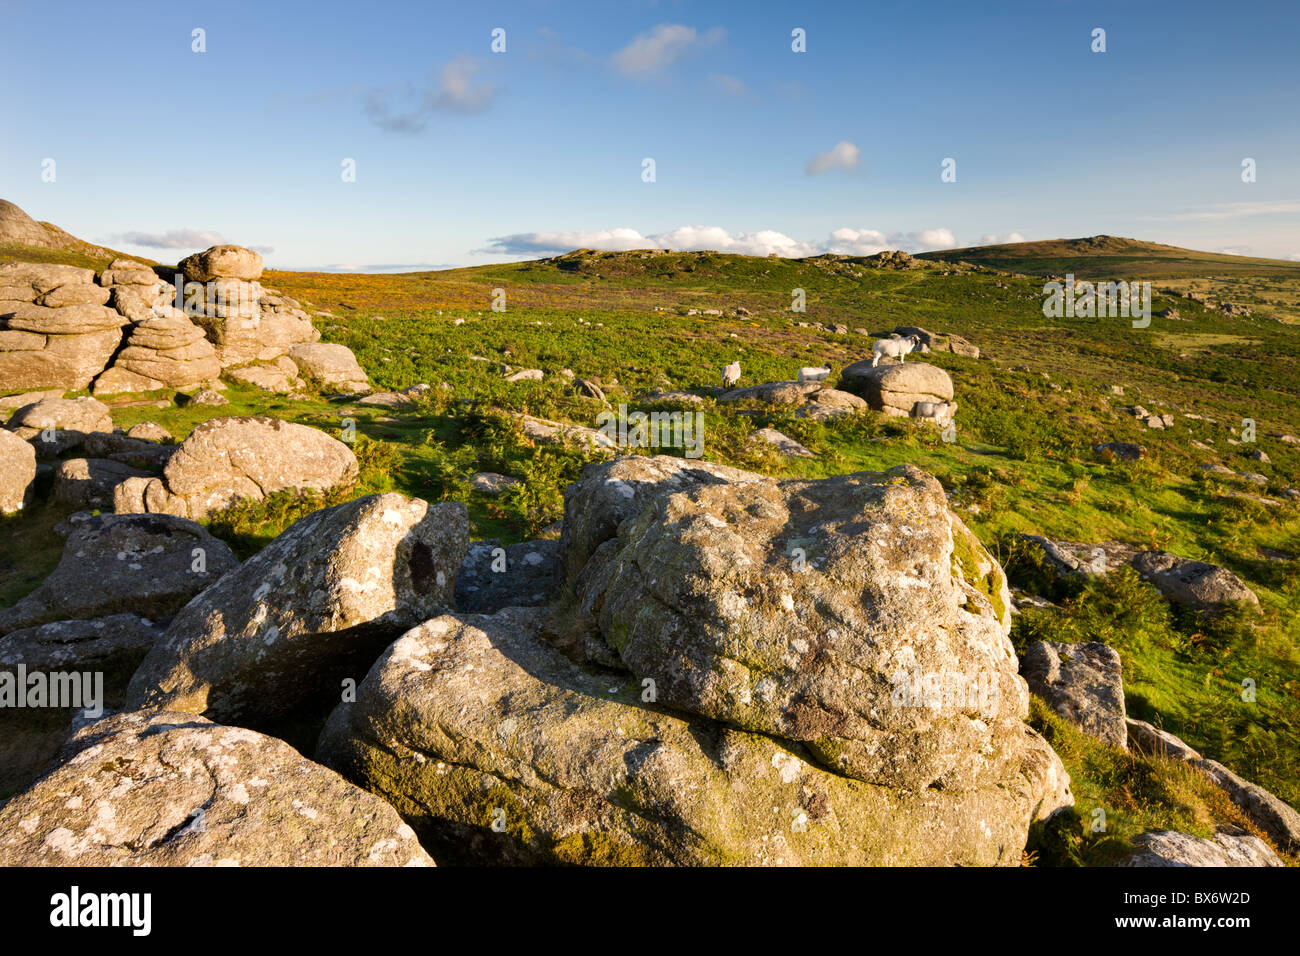 Granite outcrop at Holwell Tor, looking over bracken covered moorland to Saddle Tor, Dartmoor National Park, Devon, - Stock Image